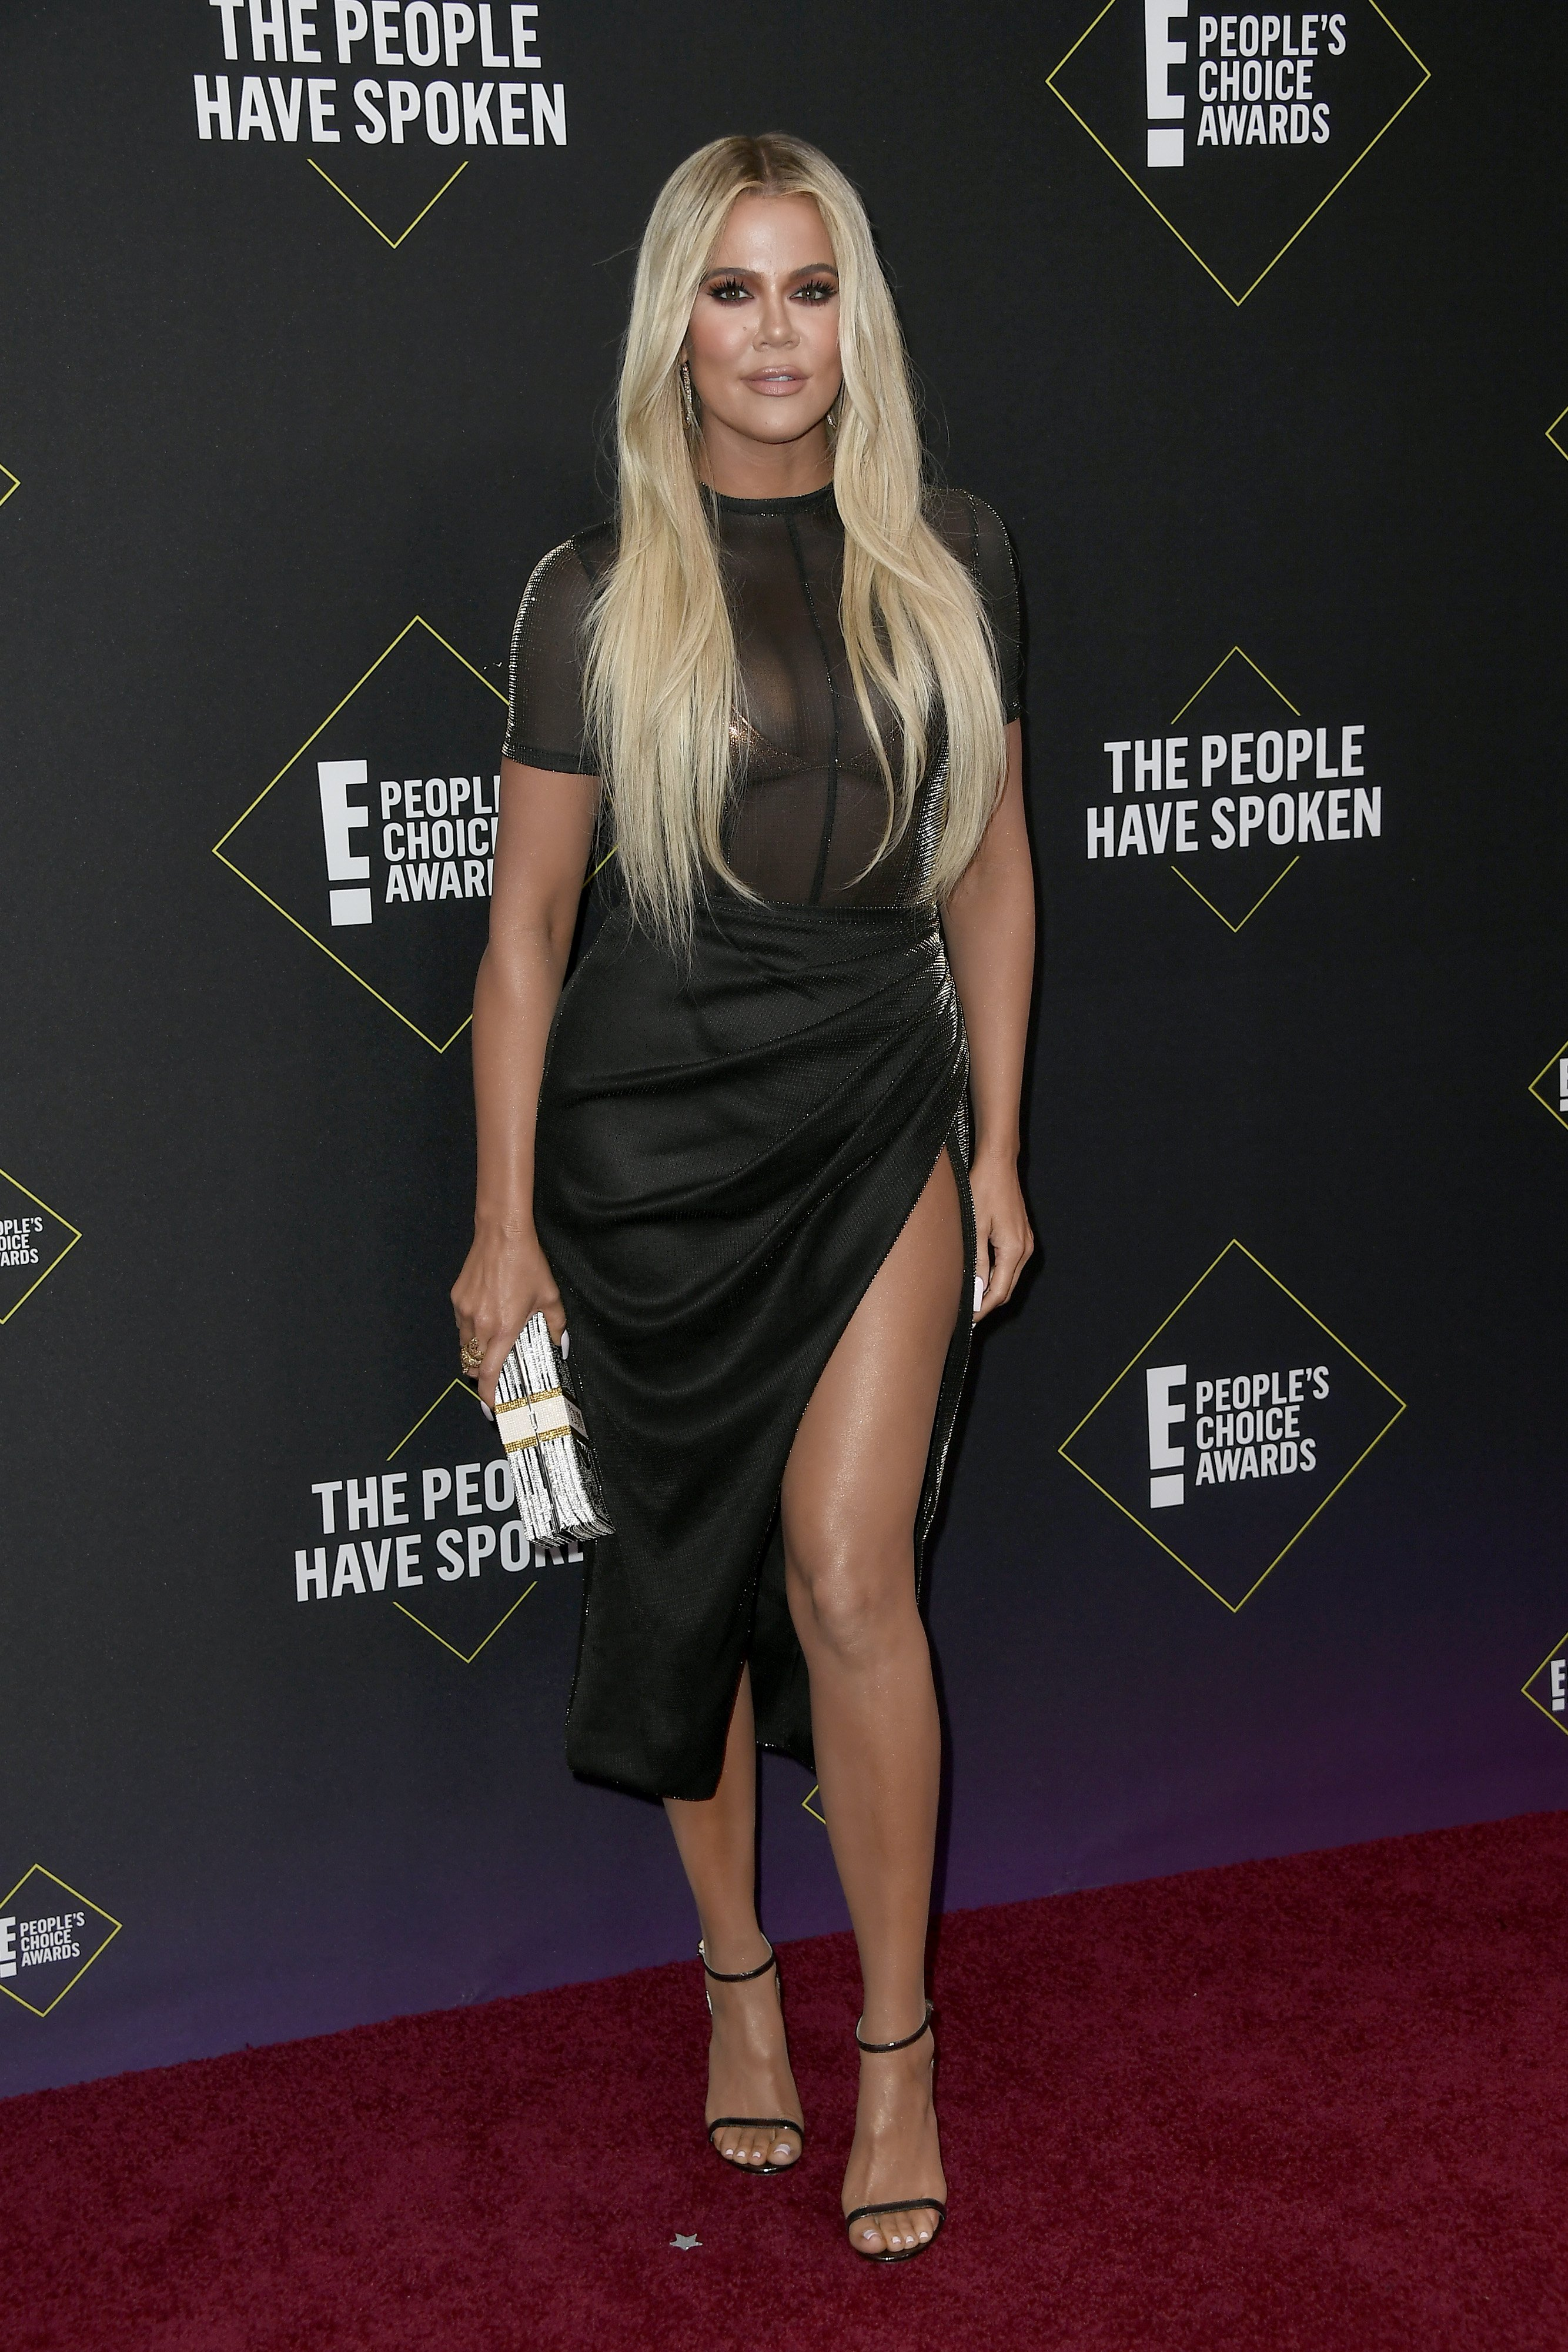 Khloé Kardashian pictured at the 2019 E! People's Choice Awards at Barker Hangar, California in 2019. | Photo: Getty Images.